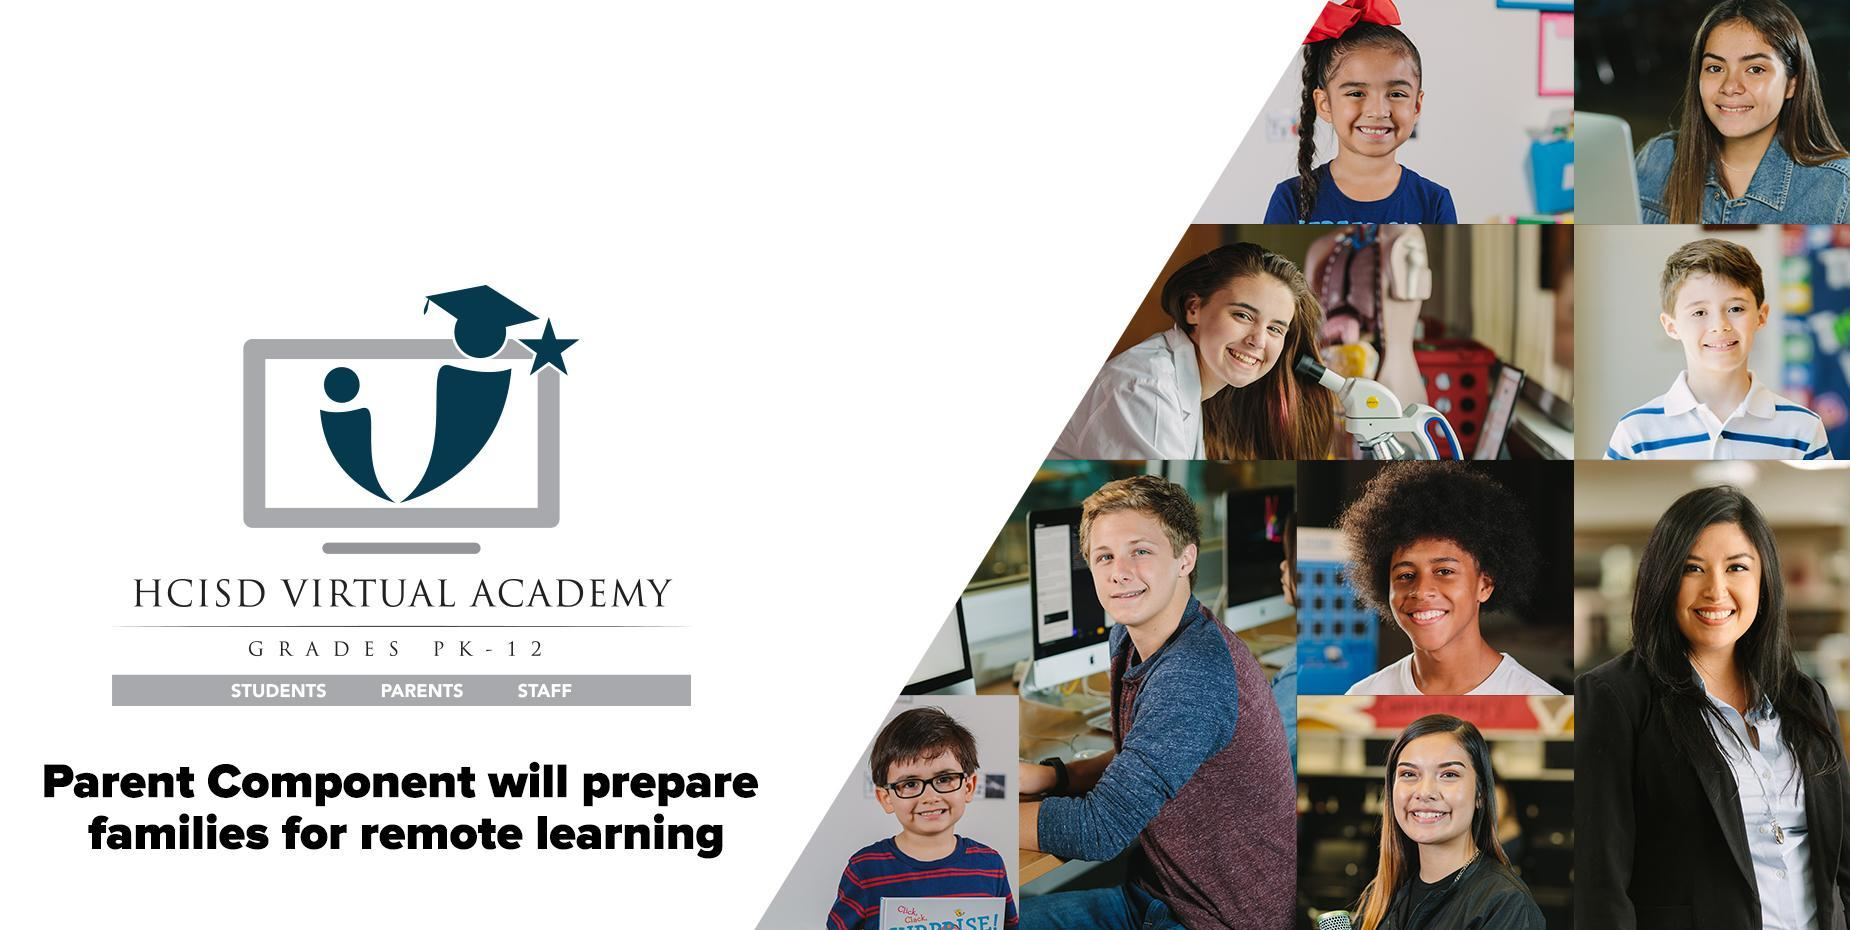 HCISD Virtual Academy: Parent Component will prepare families for remote learning